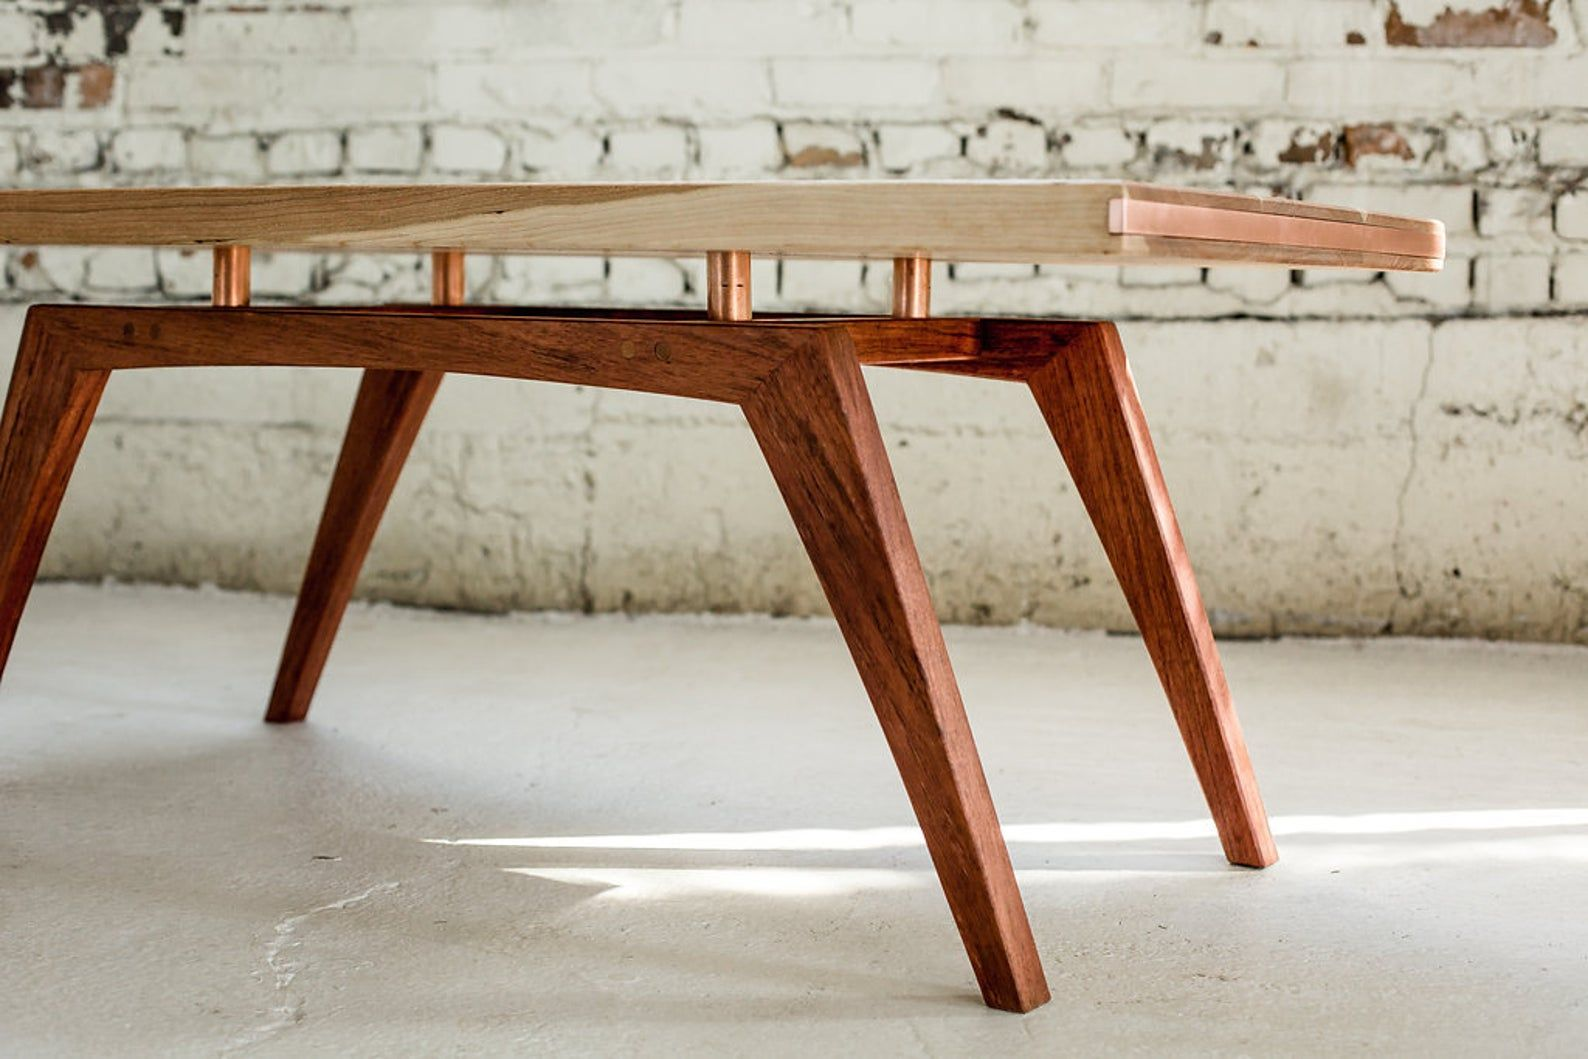 Midcentury Modern Coffee Table Solid Wood And Copper Etsy Mid Century Modern Coffee Table Midcentury Modern Dining Table Solid Wood Coffee Table [ 1059 x 1588 Pixel ]